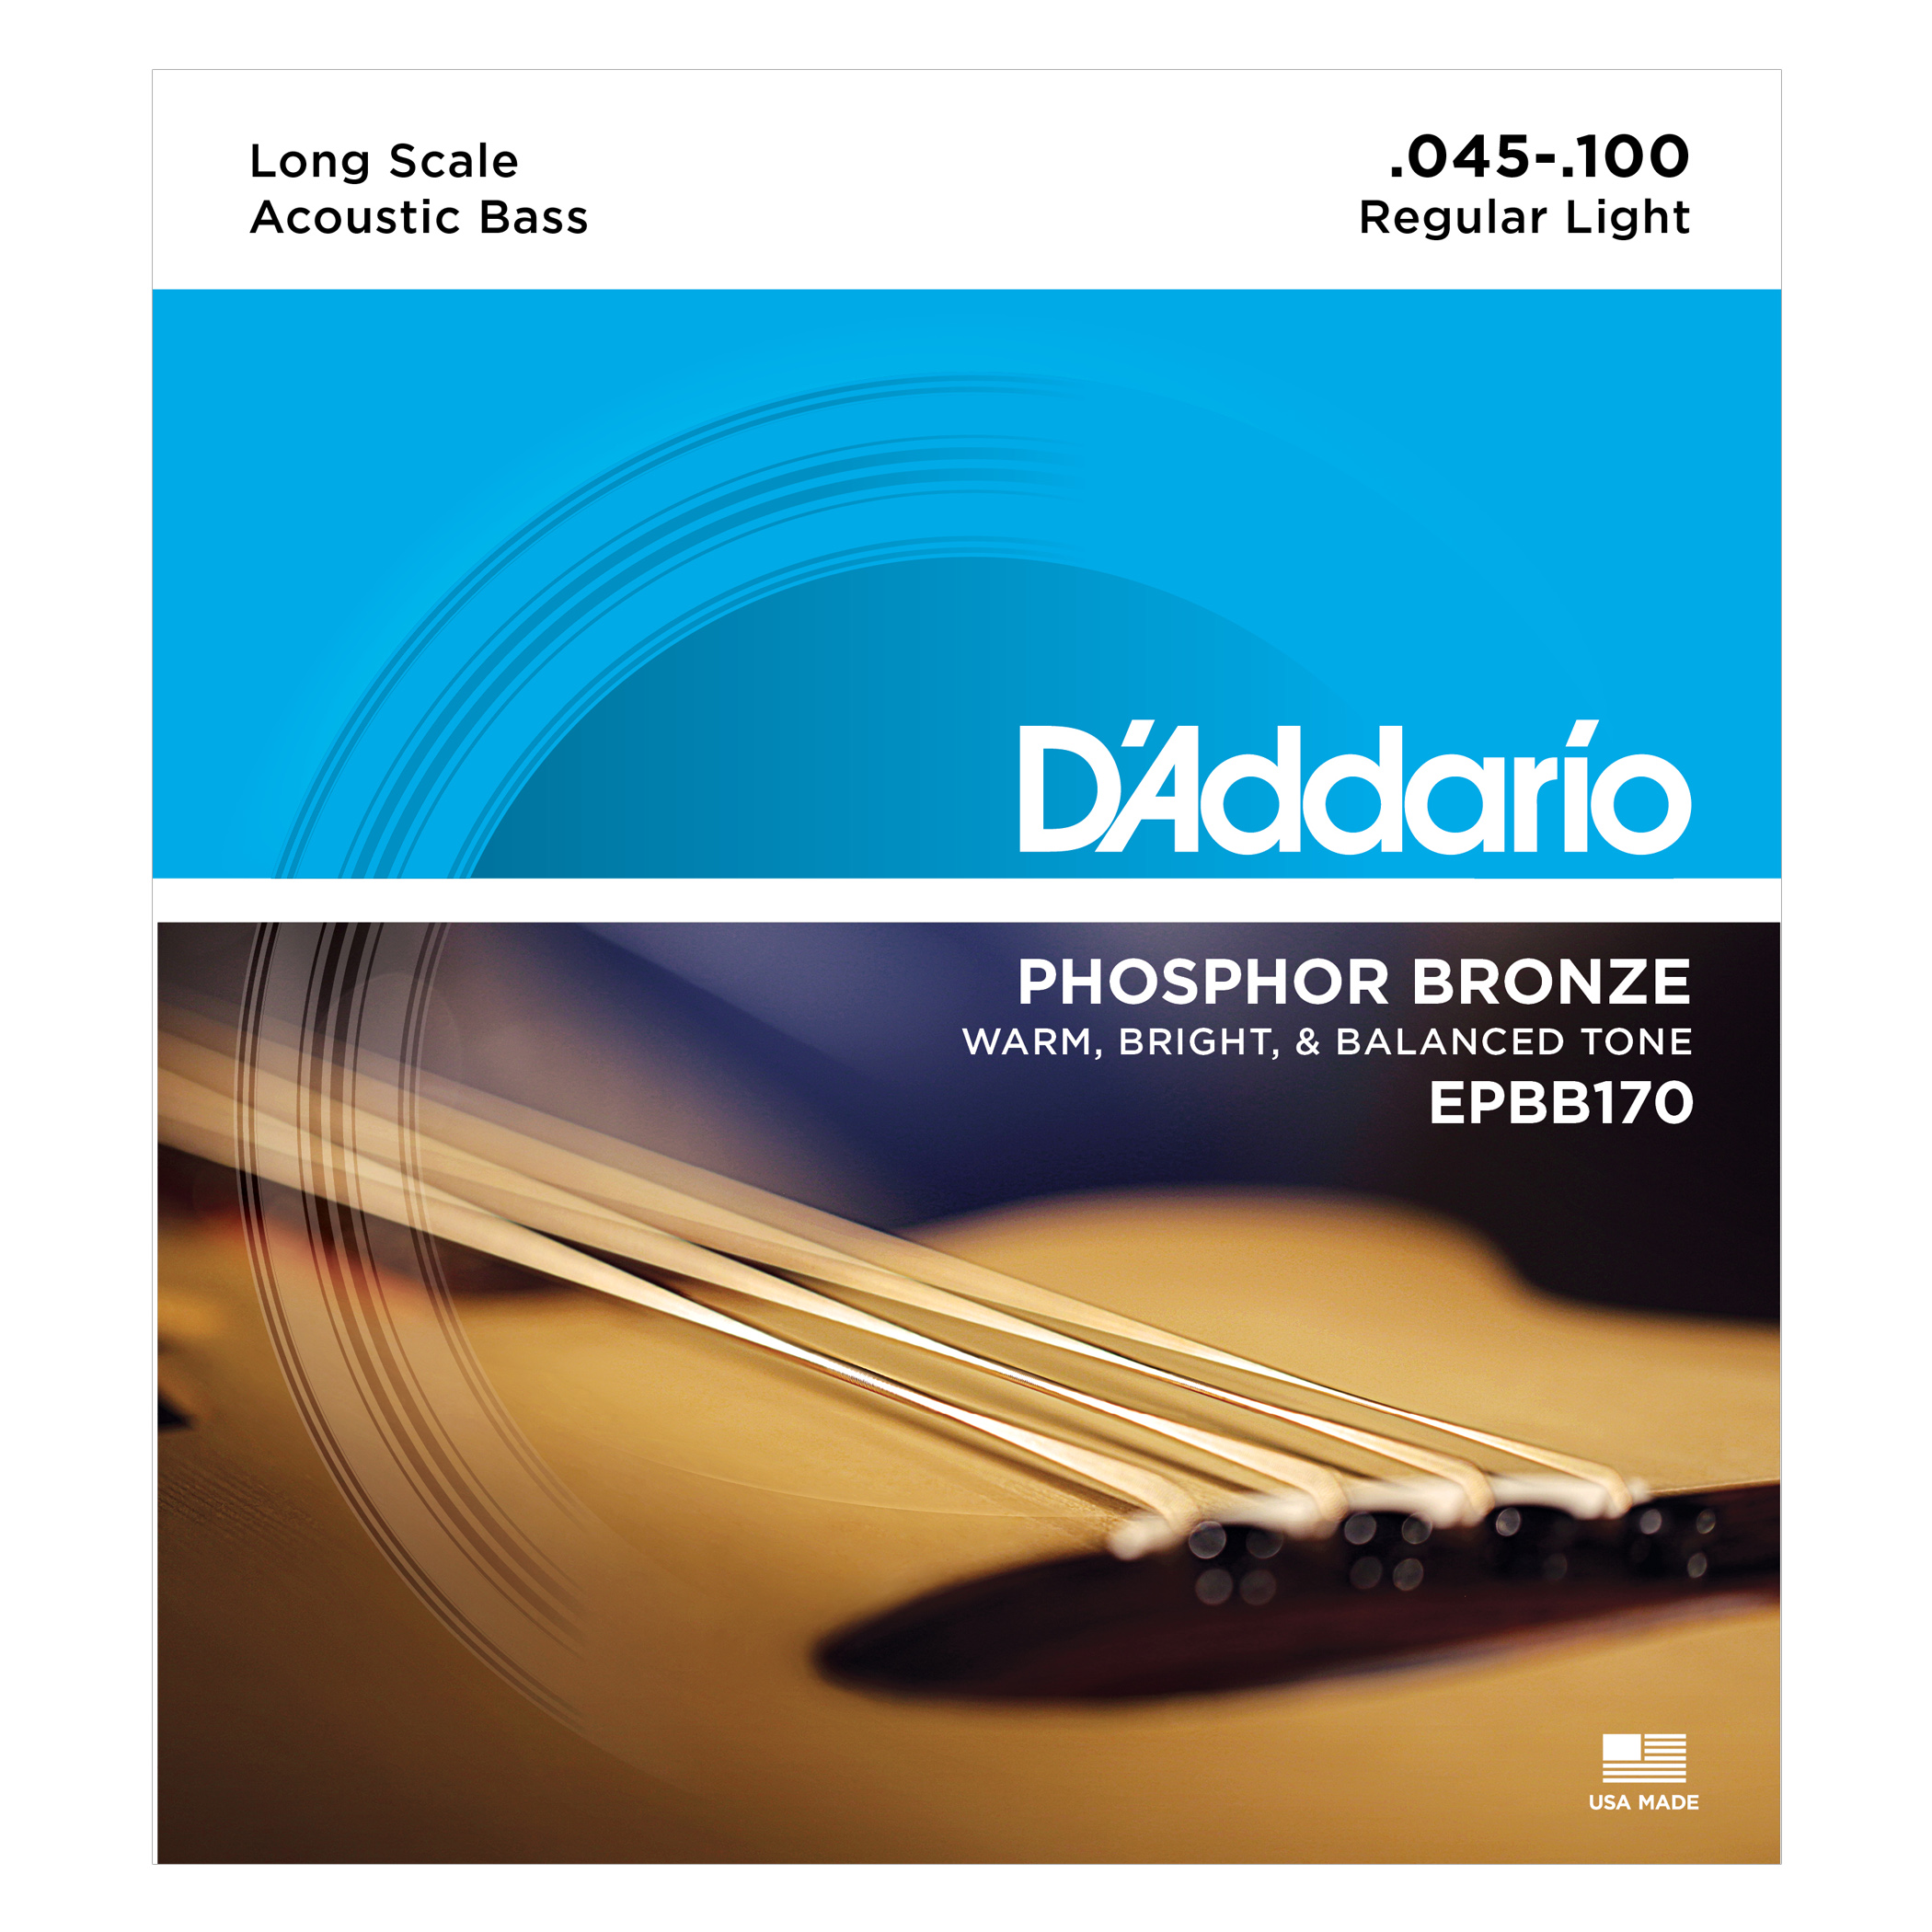 D'Addario Phosphor Bronze EPBB170 Acoustic Bass Strings, Long Scale, 45-100